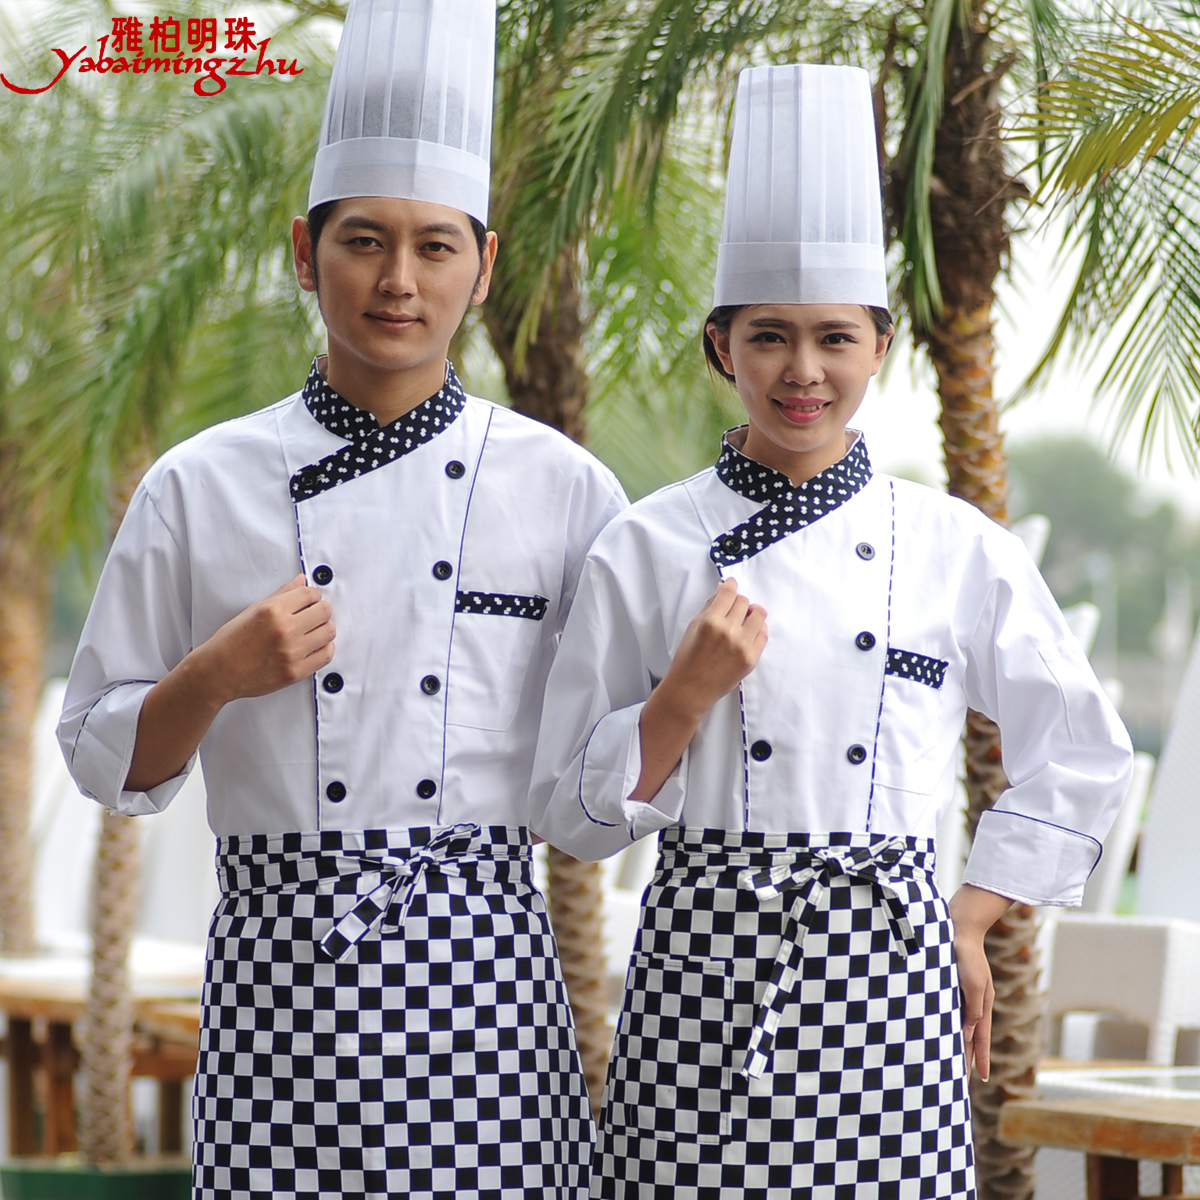 Sleeved chef service restaurant cake room hotel chef uniforms chef clothing chef uniforms fall and winter clothes chef service men and women